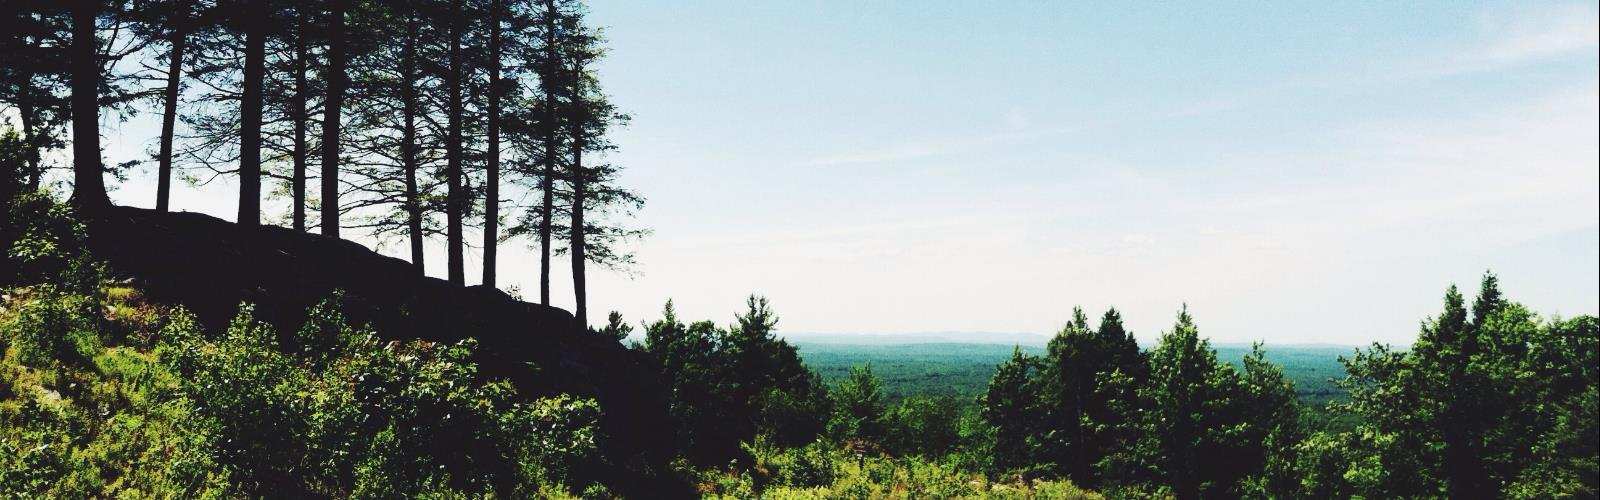 Mount Agamenticus, Maine - Hiking